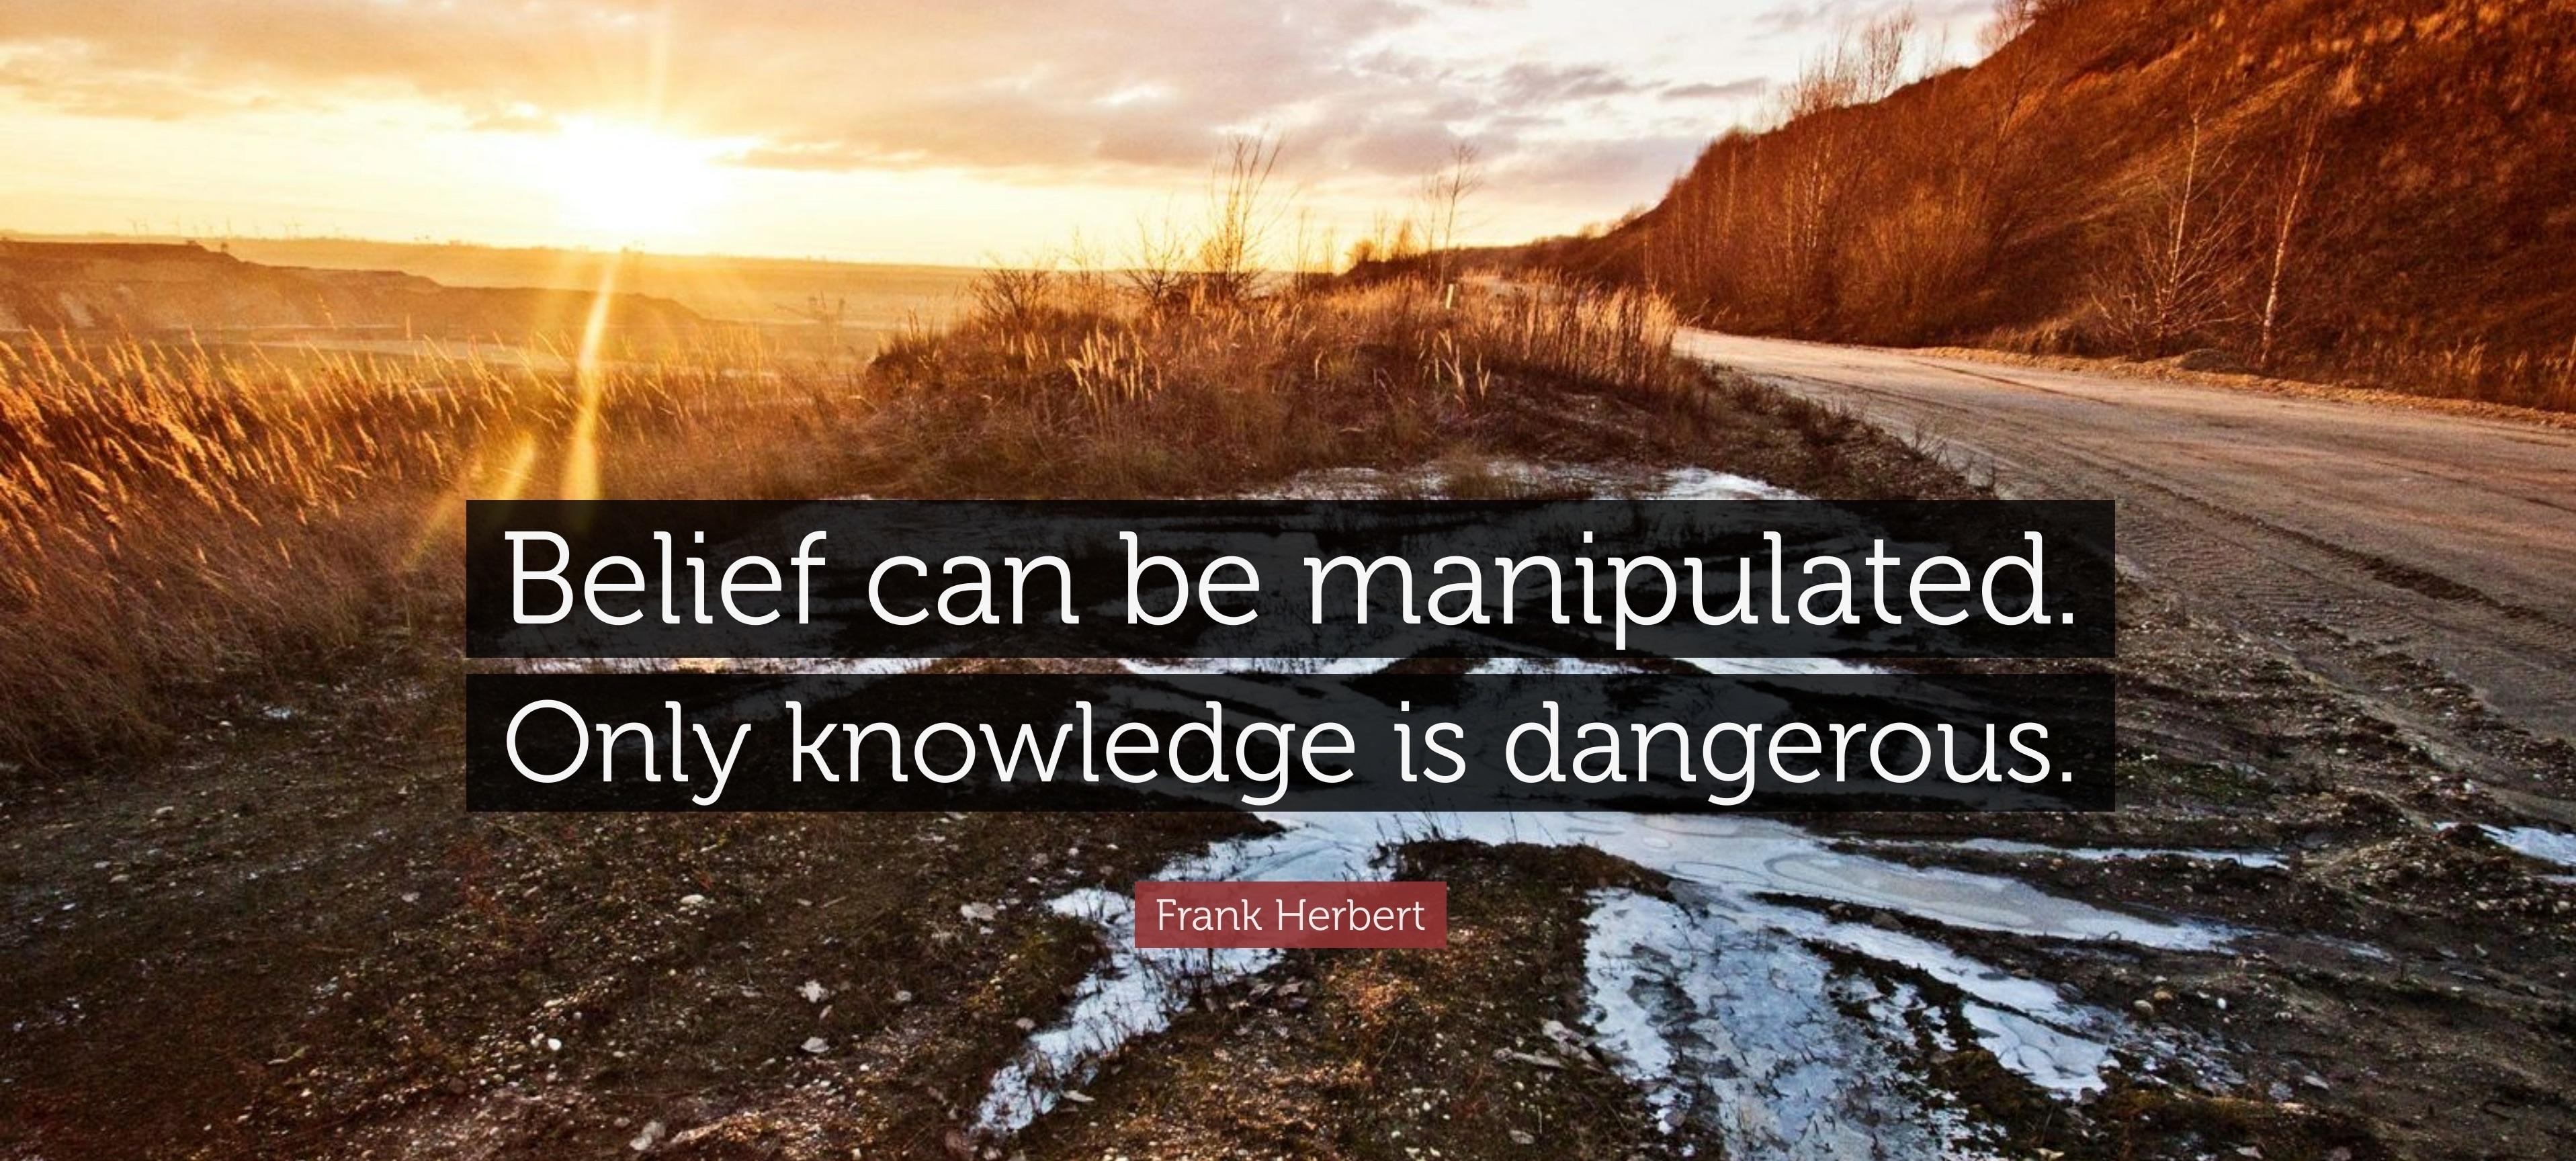 belief can be manipulated. only knowledge is dangerous-Fran Herbert(1200×980)